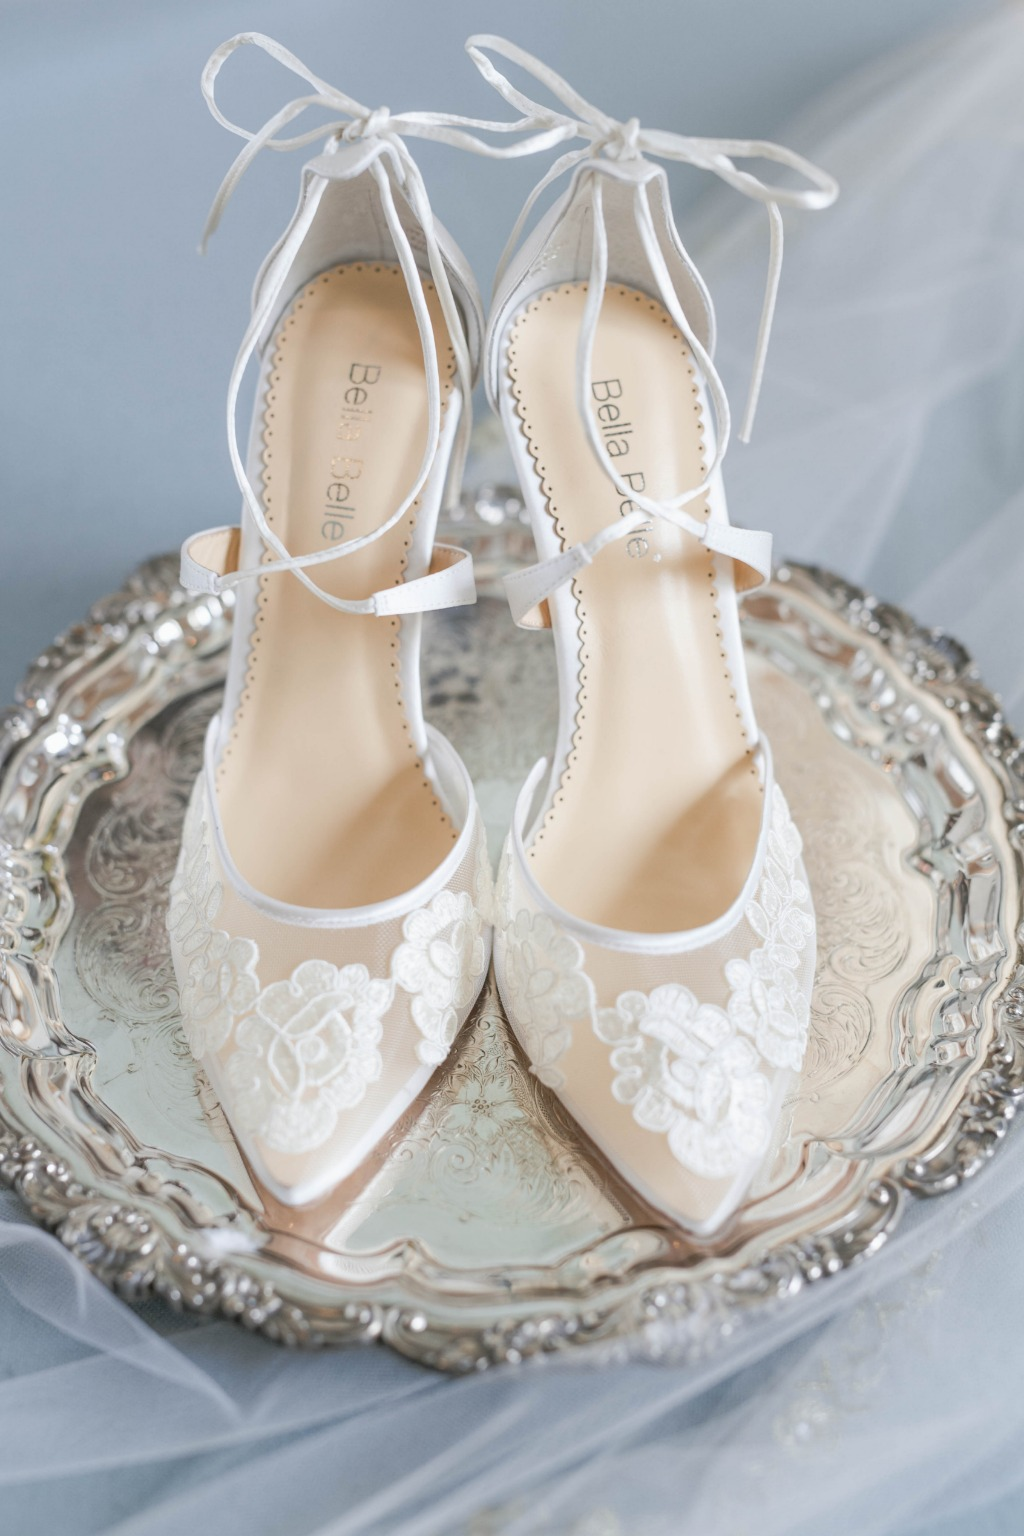 We're showing some love to Anita, a classic ivory lace wedding heel that radiates class and elegance. See more at @bellabelleshoes